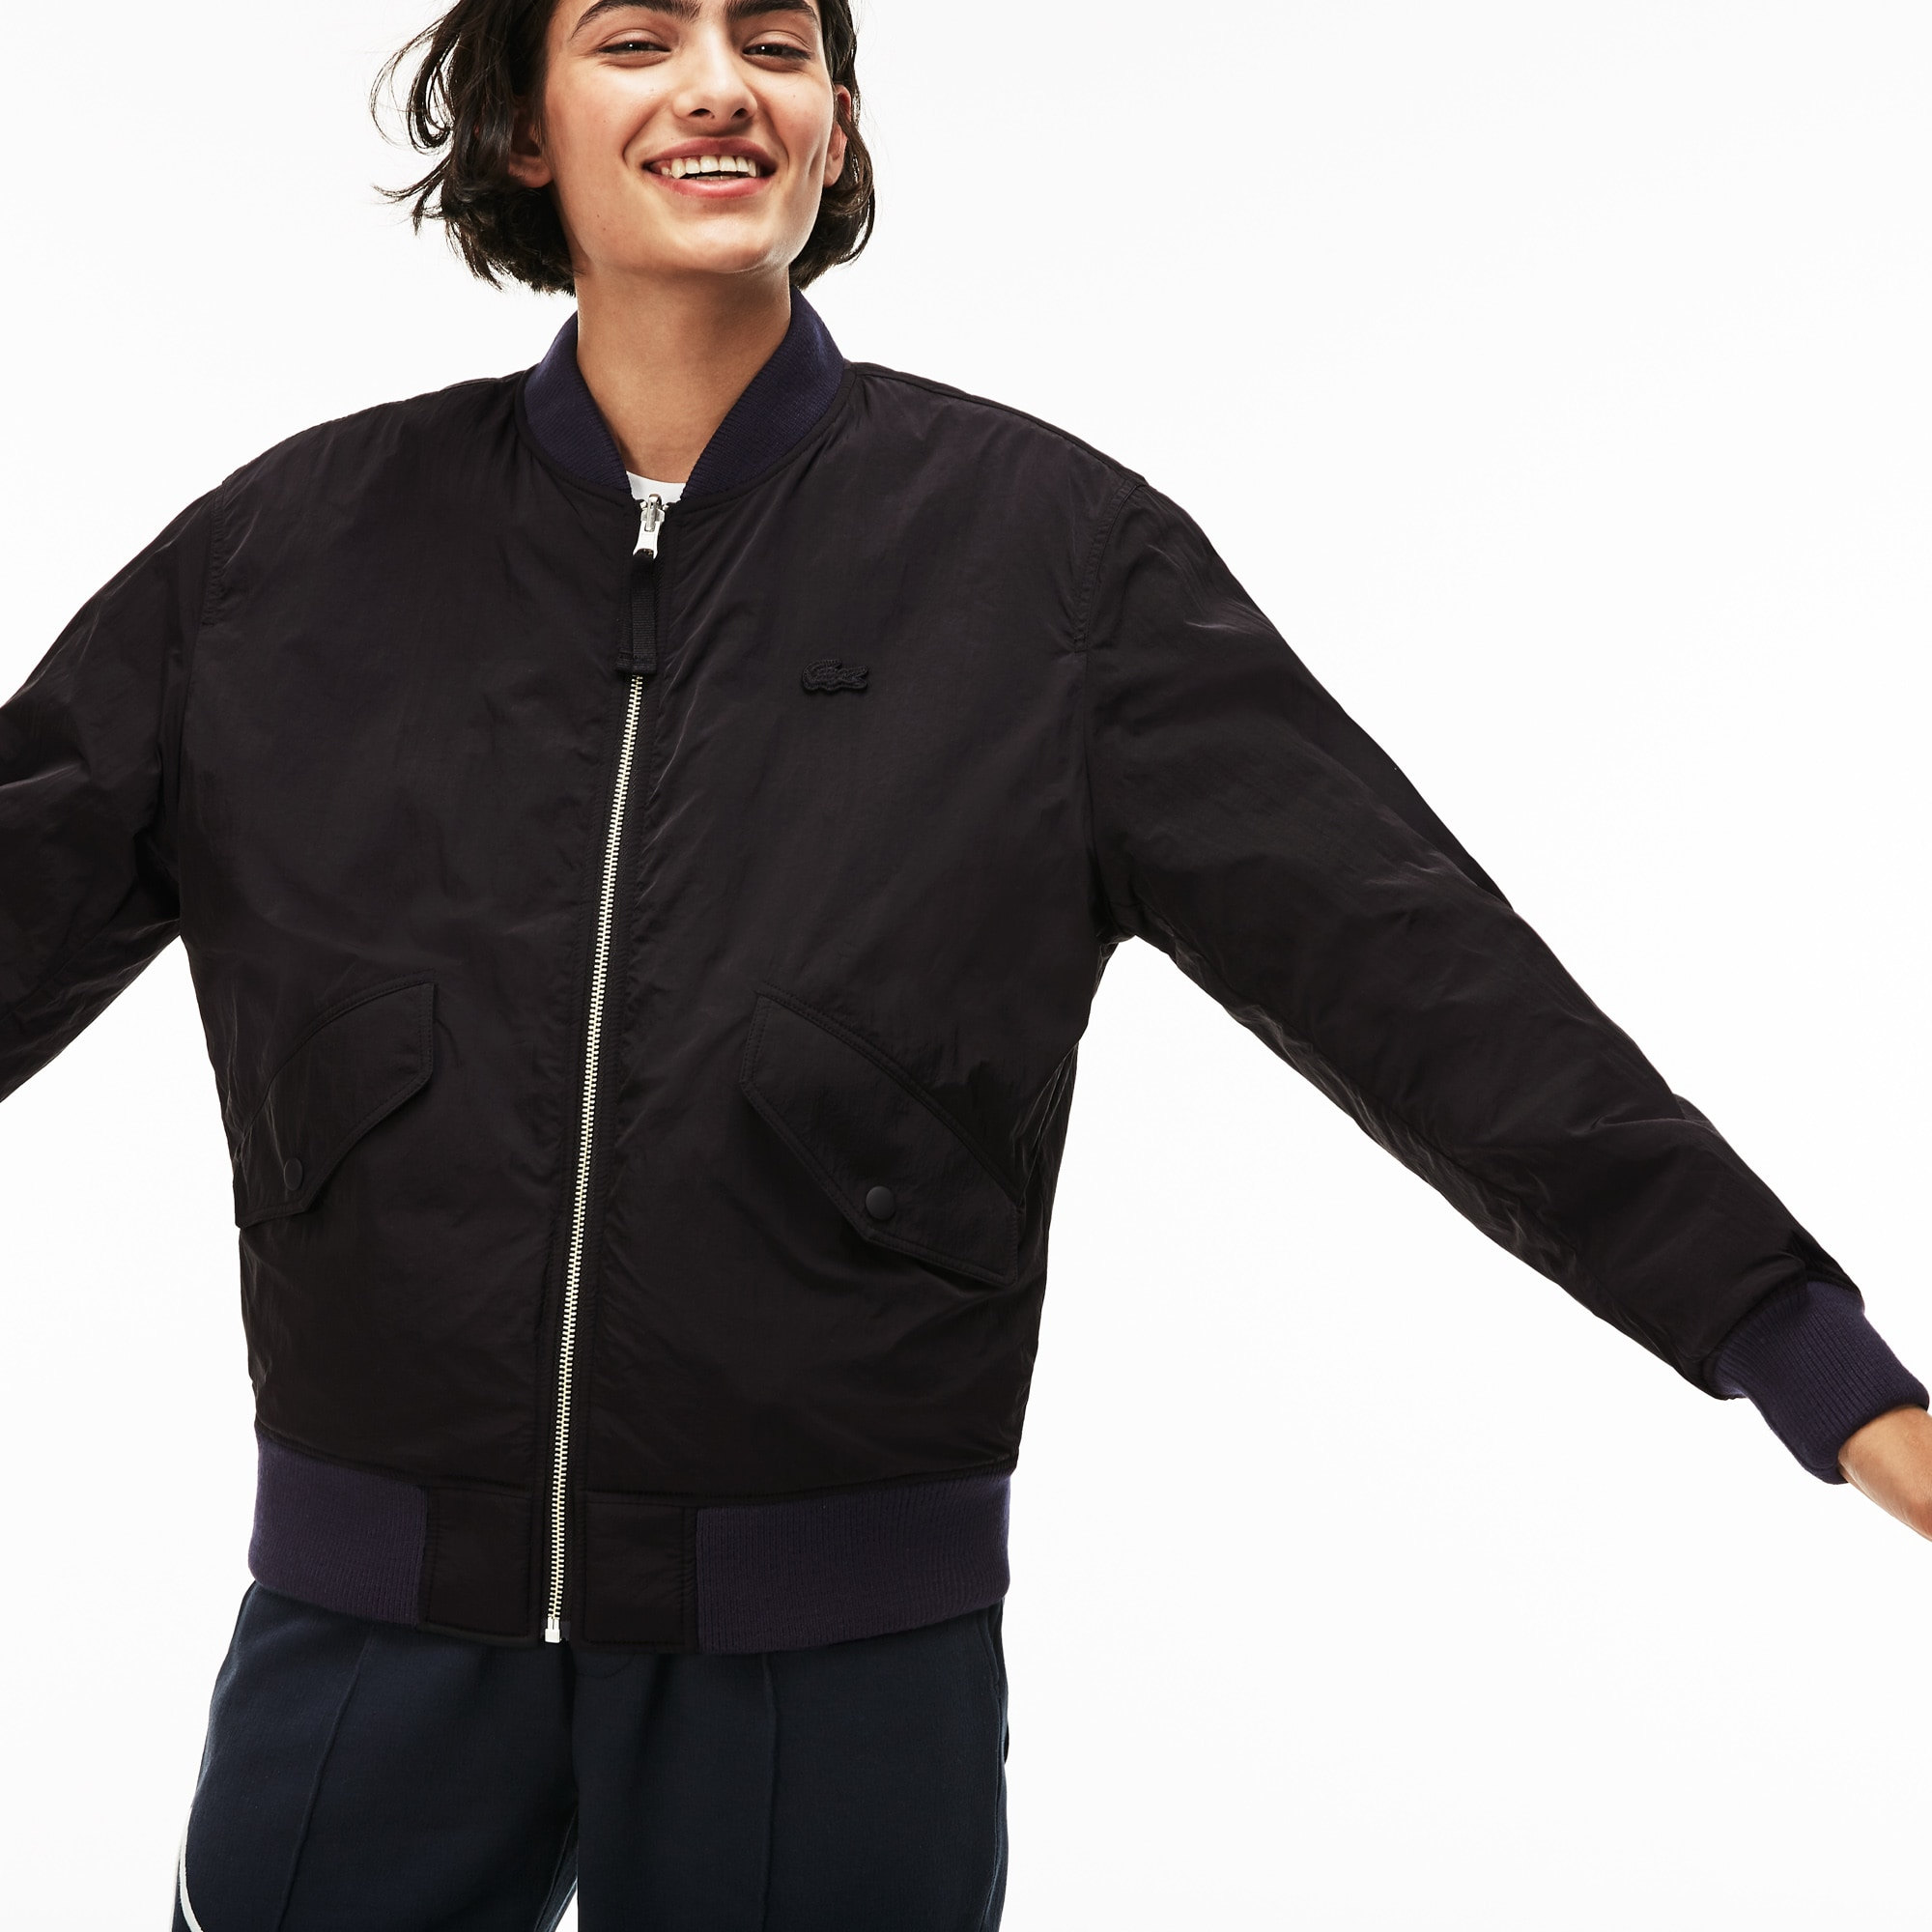 129f20b582 Unisex LIVE Reversible Nylon And Fleece Bomber Jacket | LACOSTE